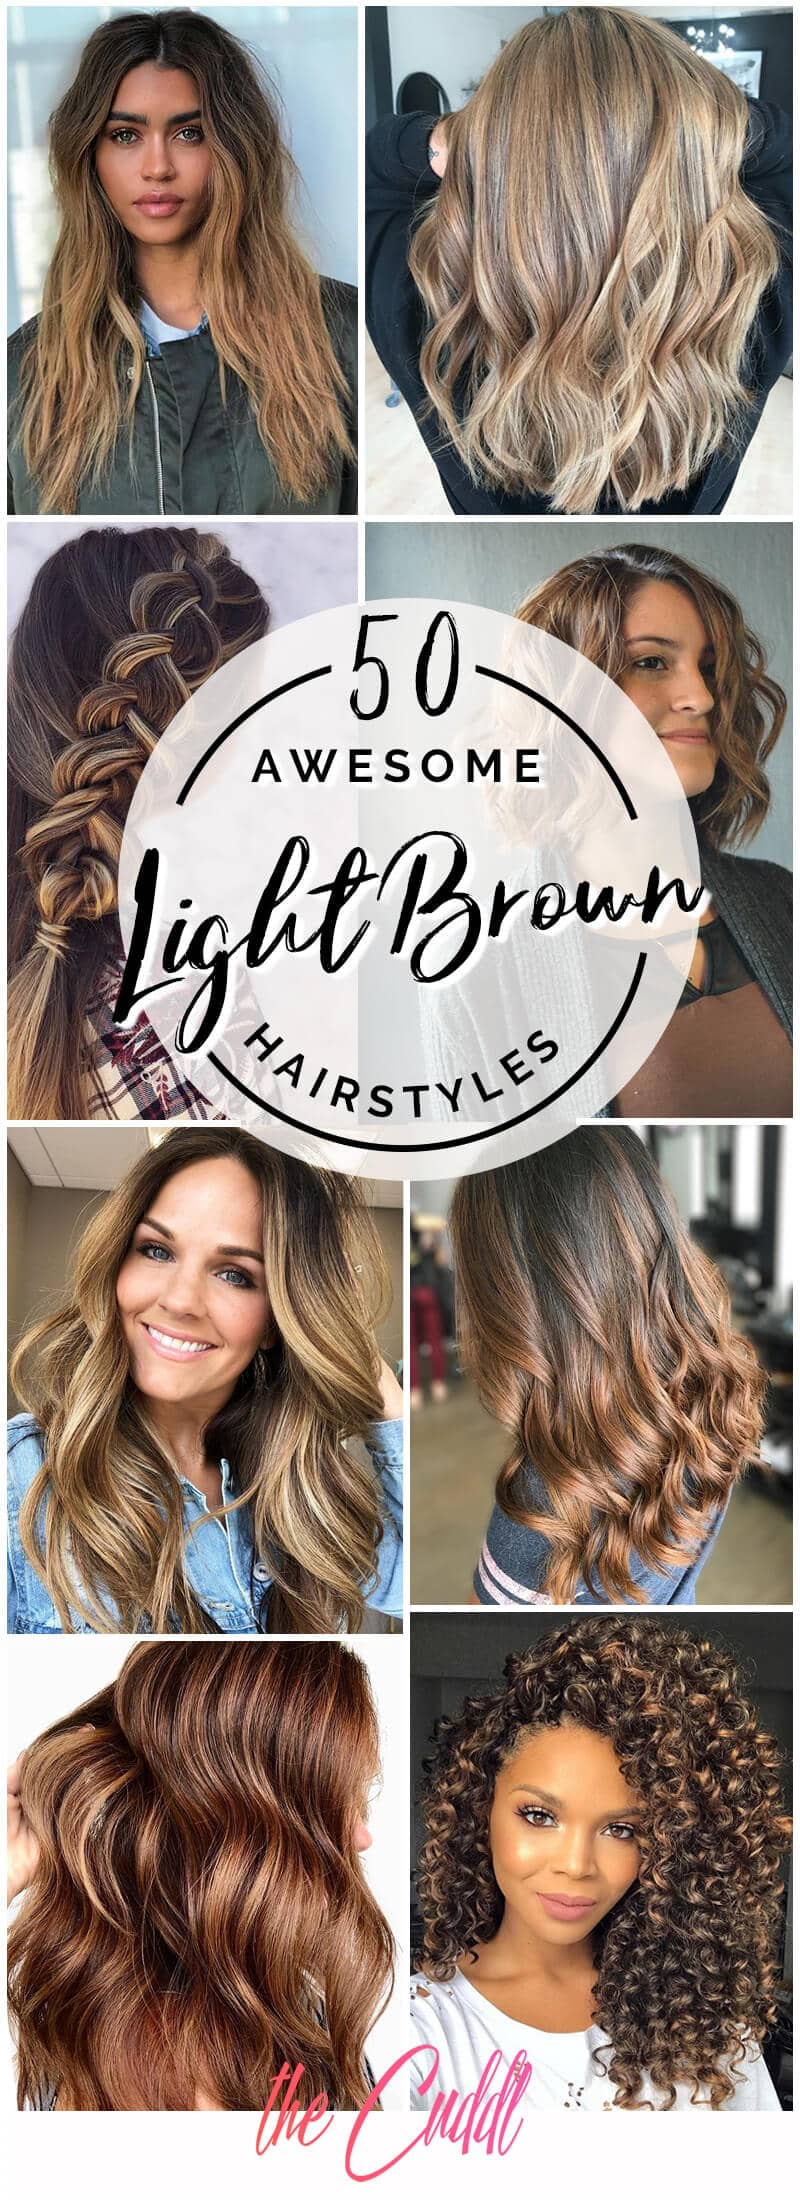 50 Gorgeous Light Brown Hairstyle Ideas To Rock A Hot New Look In 2020